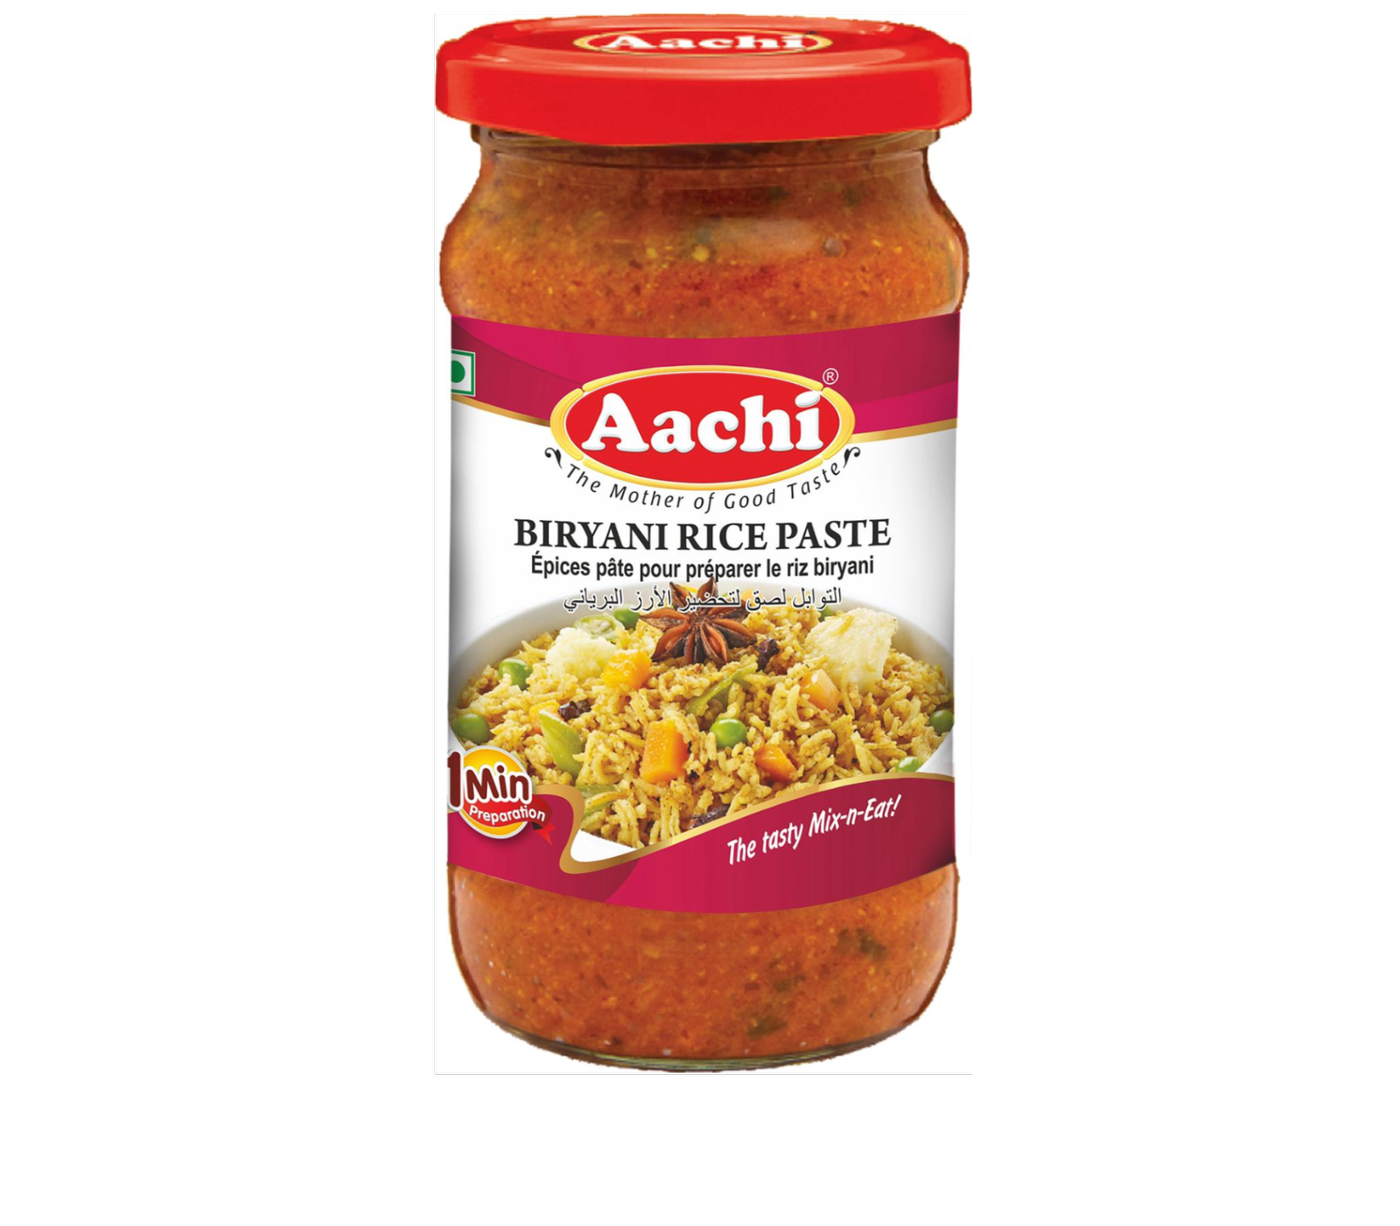 Aachi Biryani Rice Paste